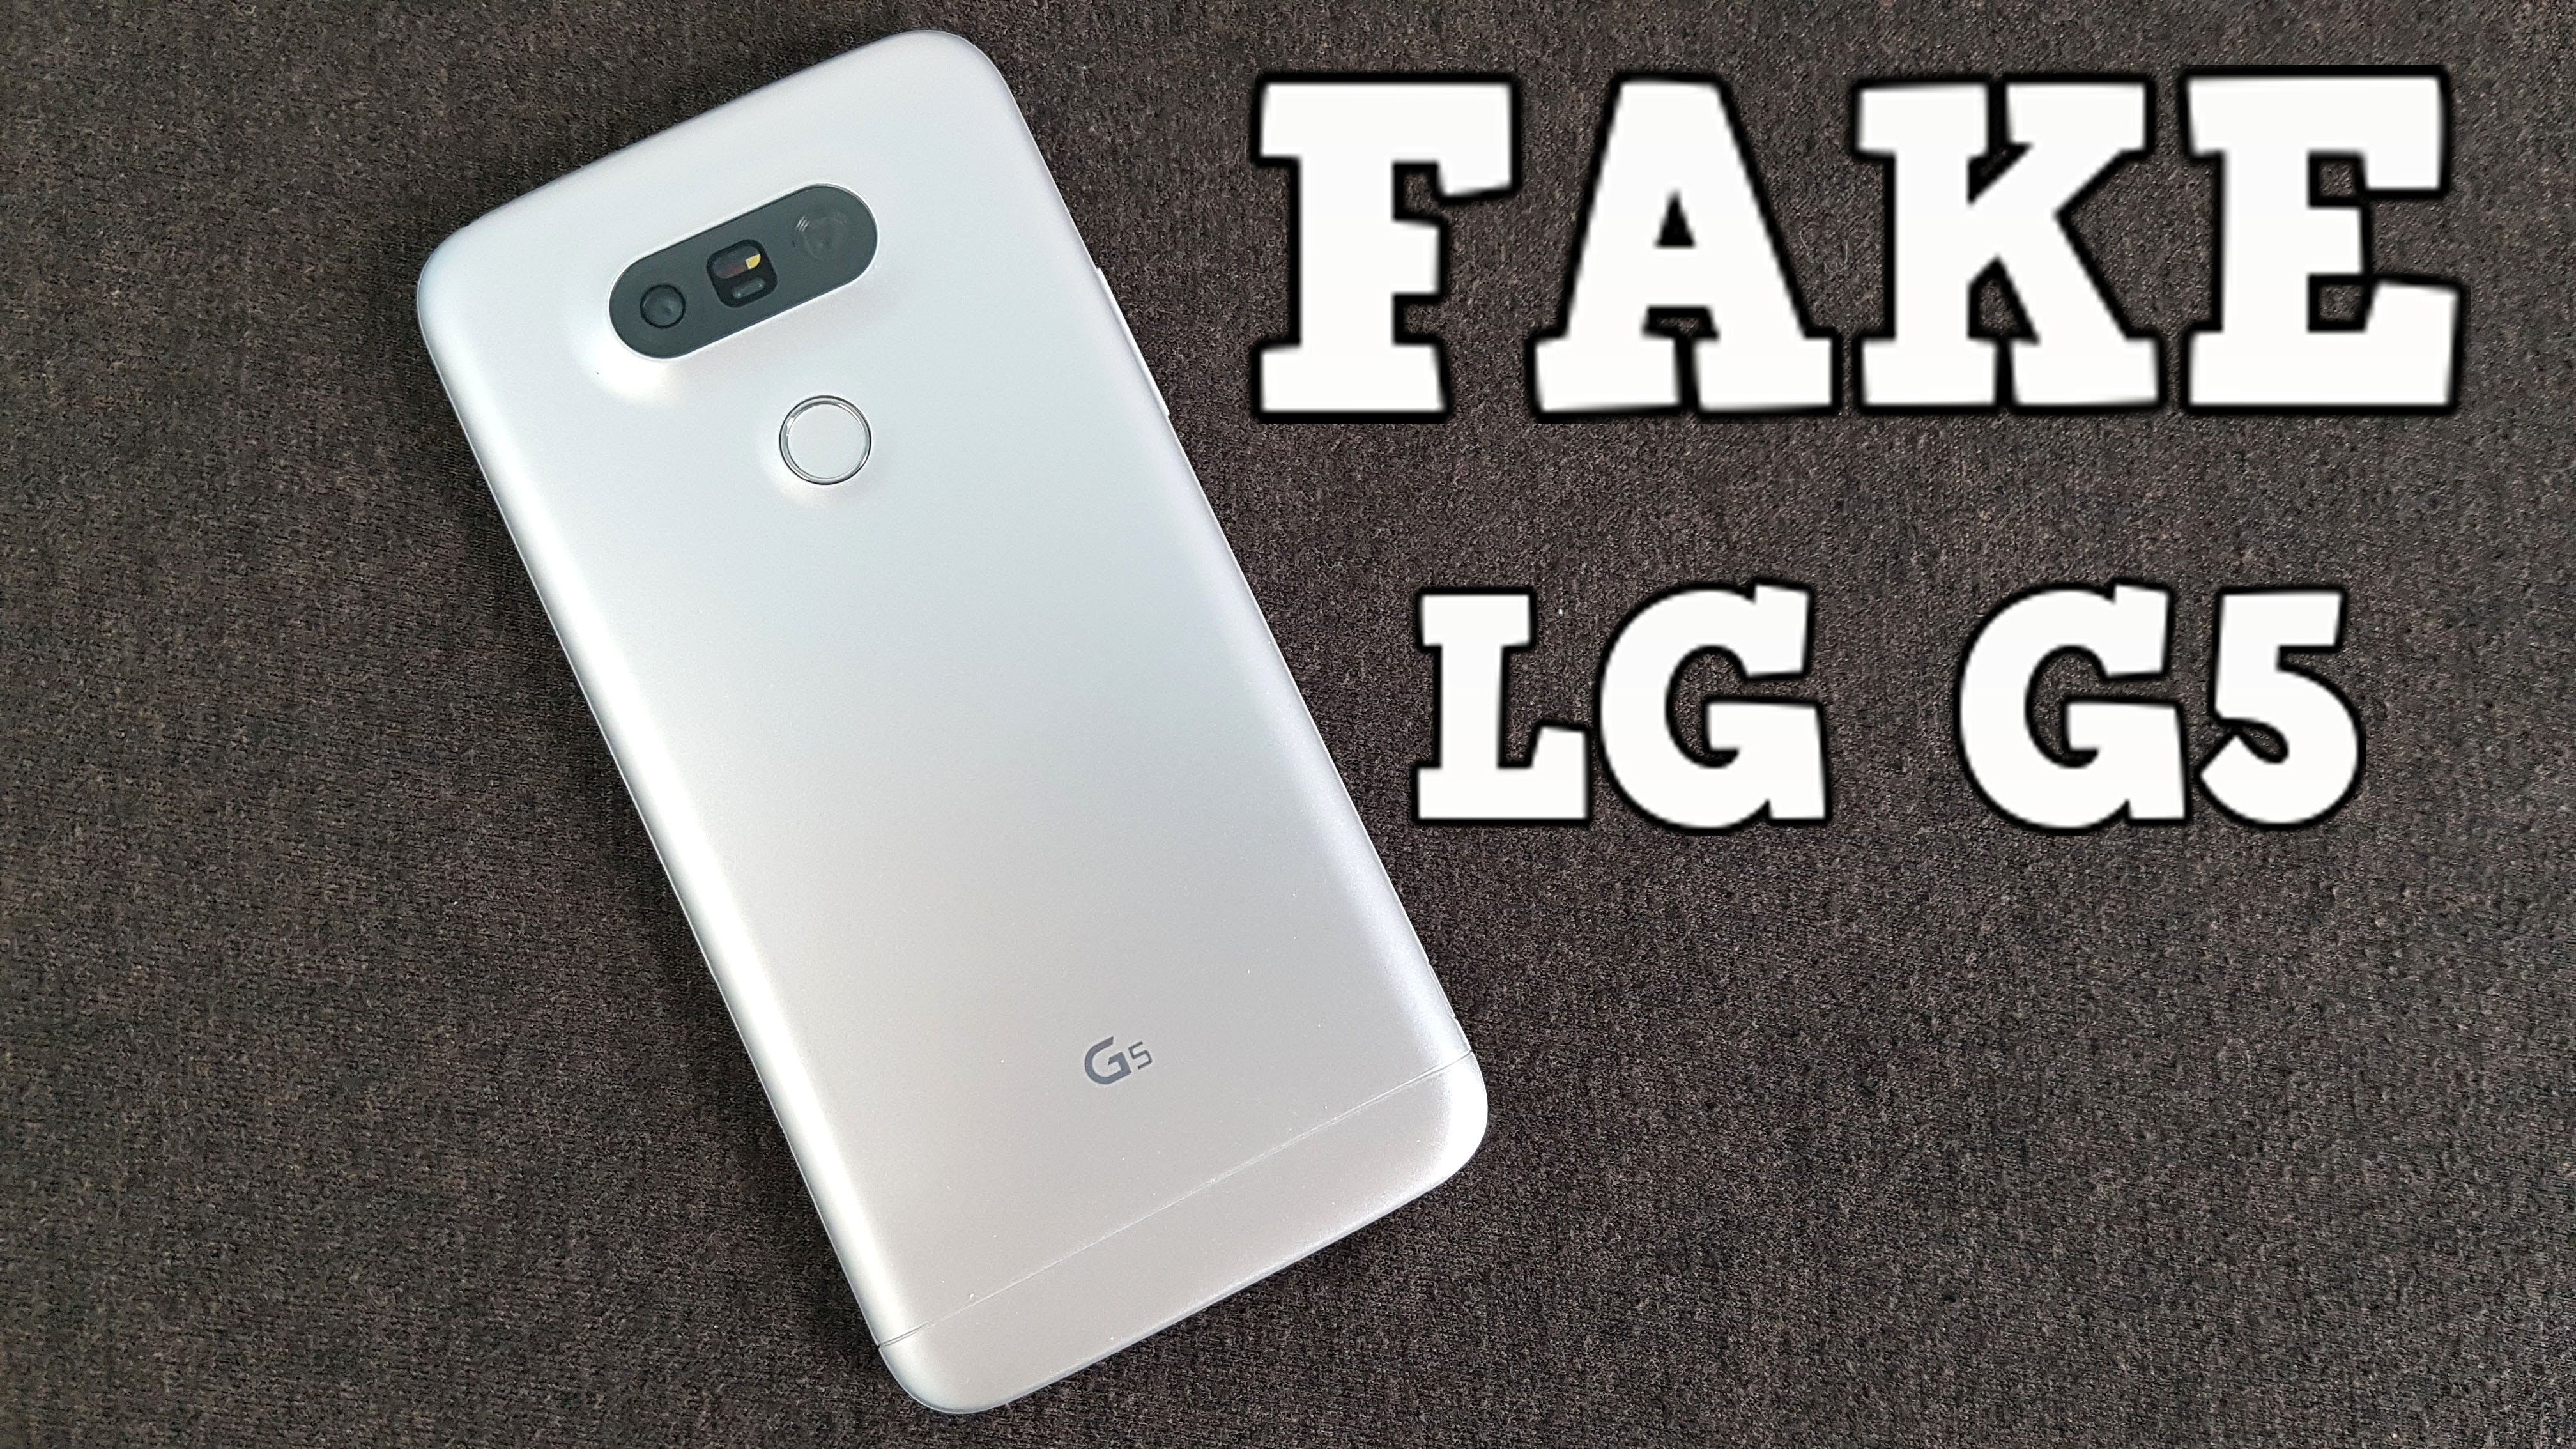 FAKE LG G5 Review - 1:1 Replica - Do not get fooled into buying fake  products! | iphone 7 philippines review - WATCH VIDEO HERE ...